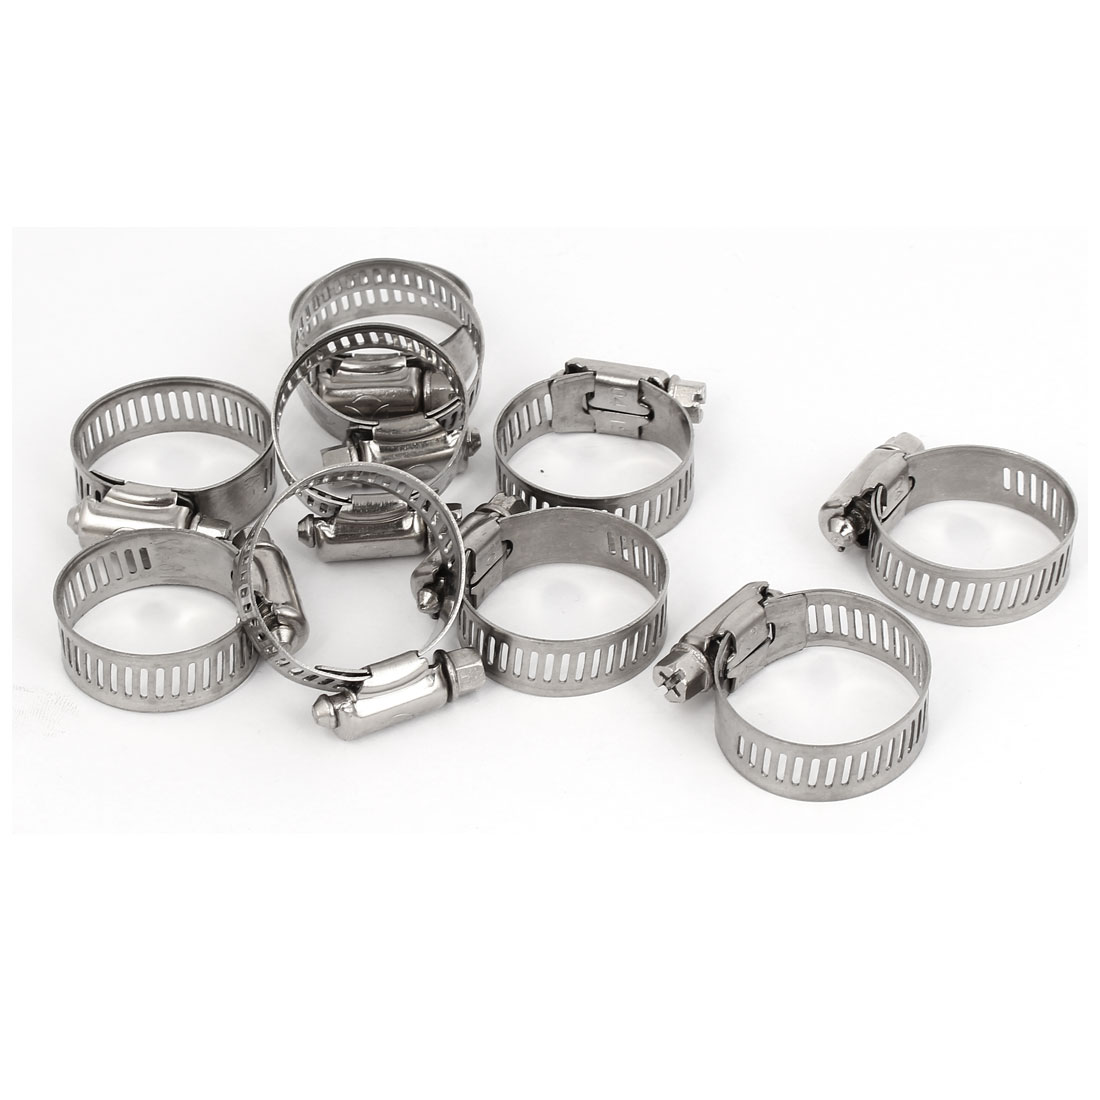 Water Pipe Hose Fitting Metal Adjustable Tight Worm Gear Clamp Silver Tone 18-32mm 10pcs